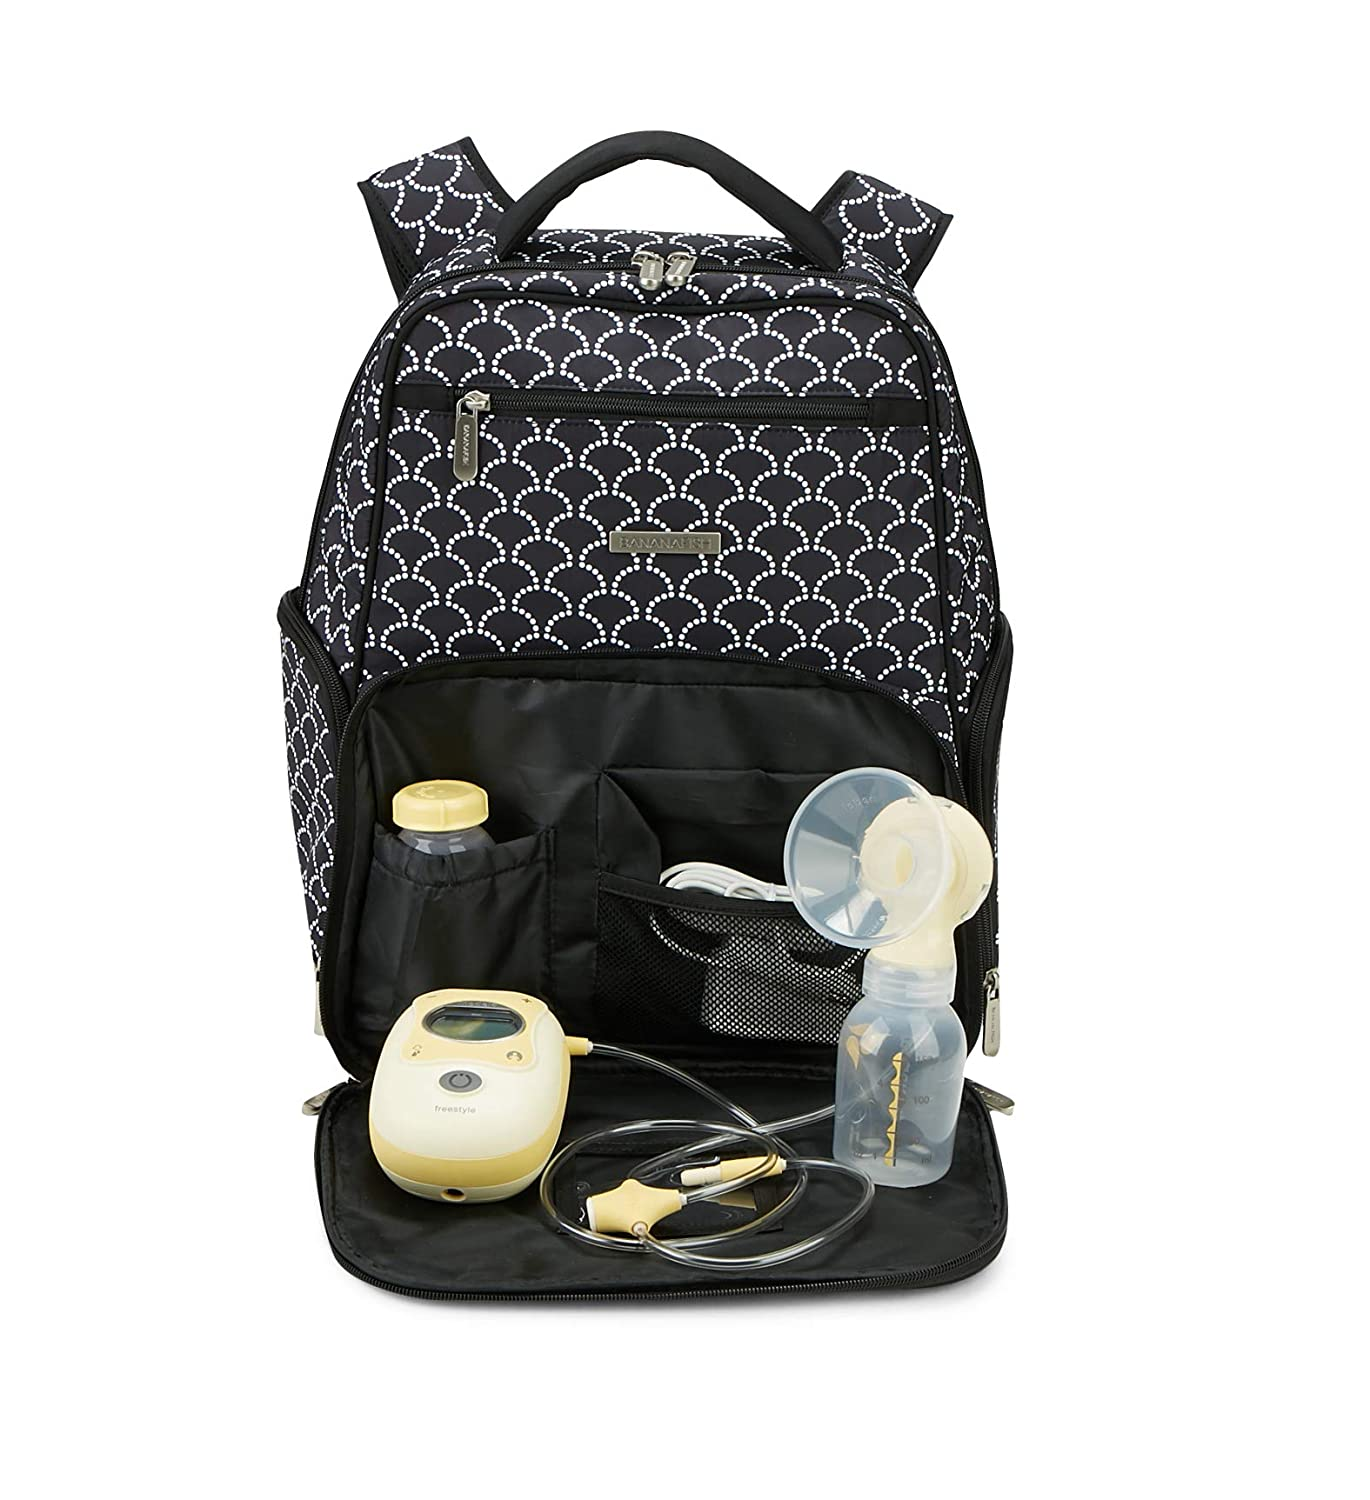 Cute Portable Carrying Bag Great for Travel or Storage Bananafish Madison Electric Breast Pump Backpack Fits Most Major Brands Including Medela and Spectra Accessory and Cooler Pockets